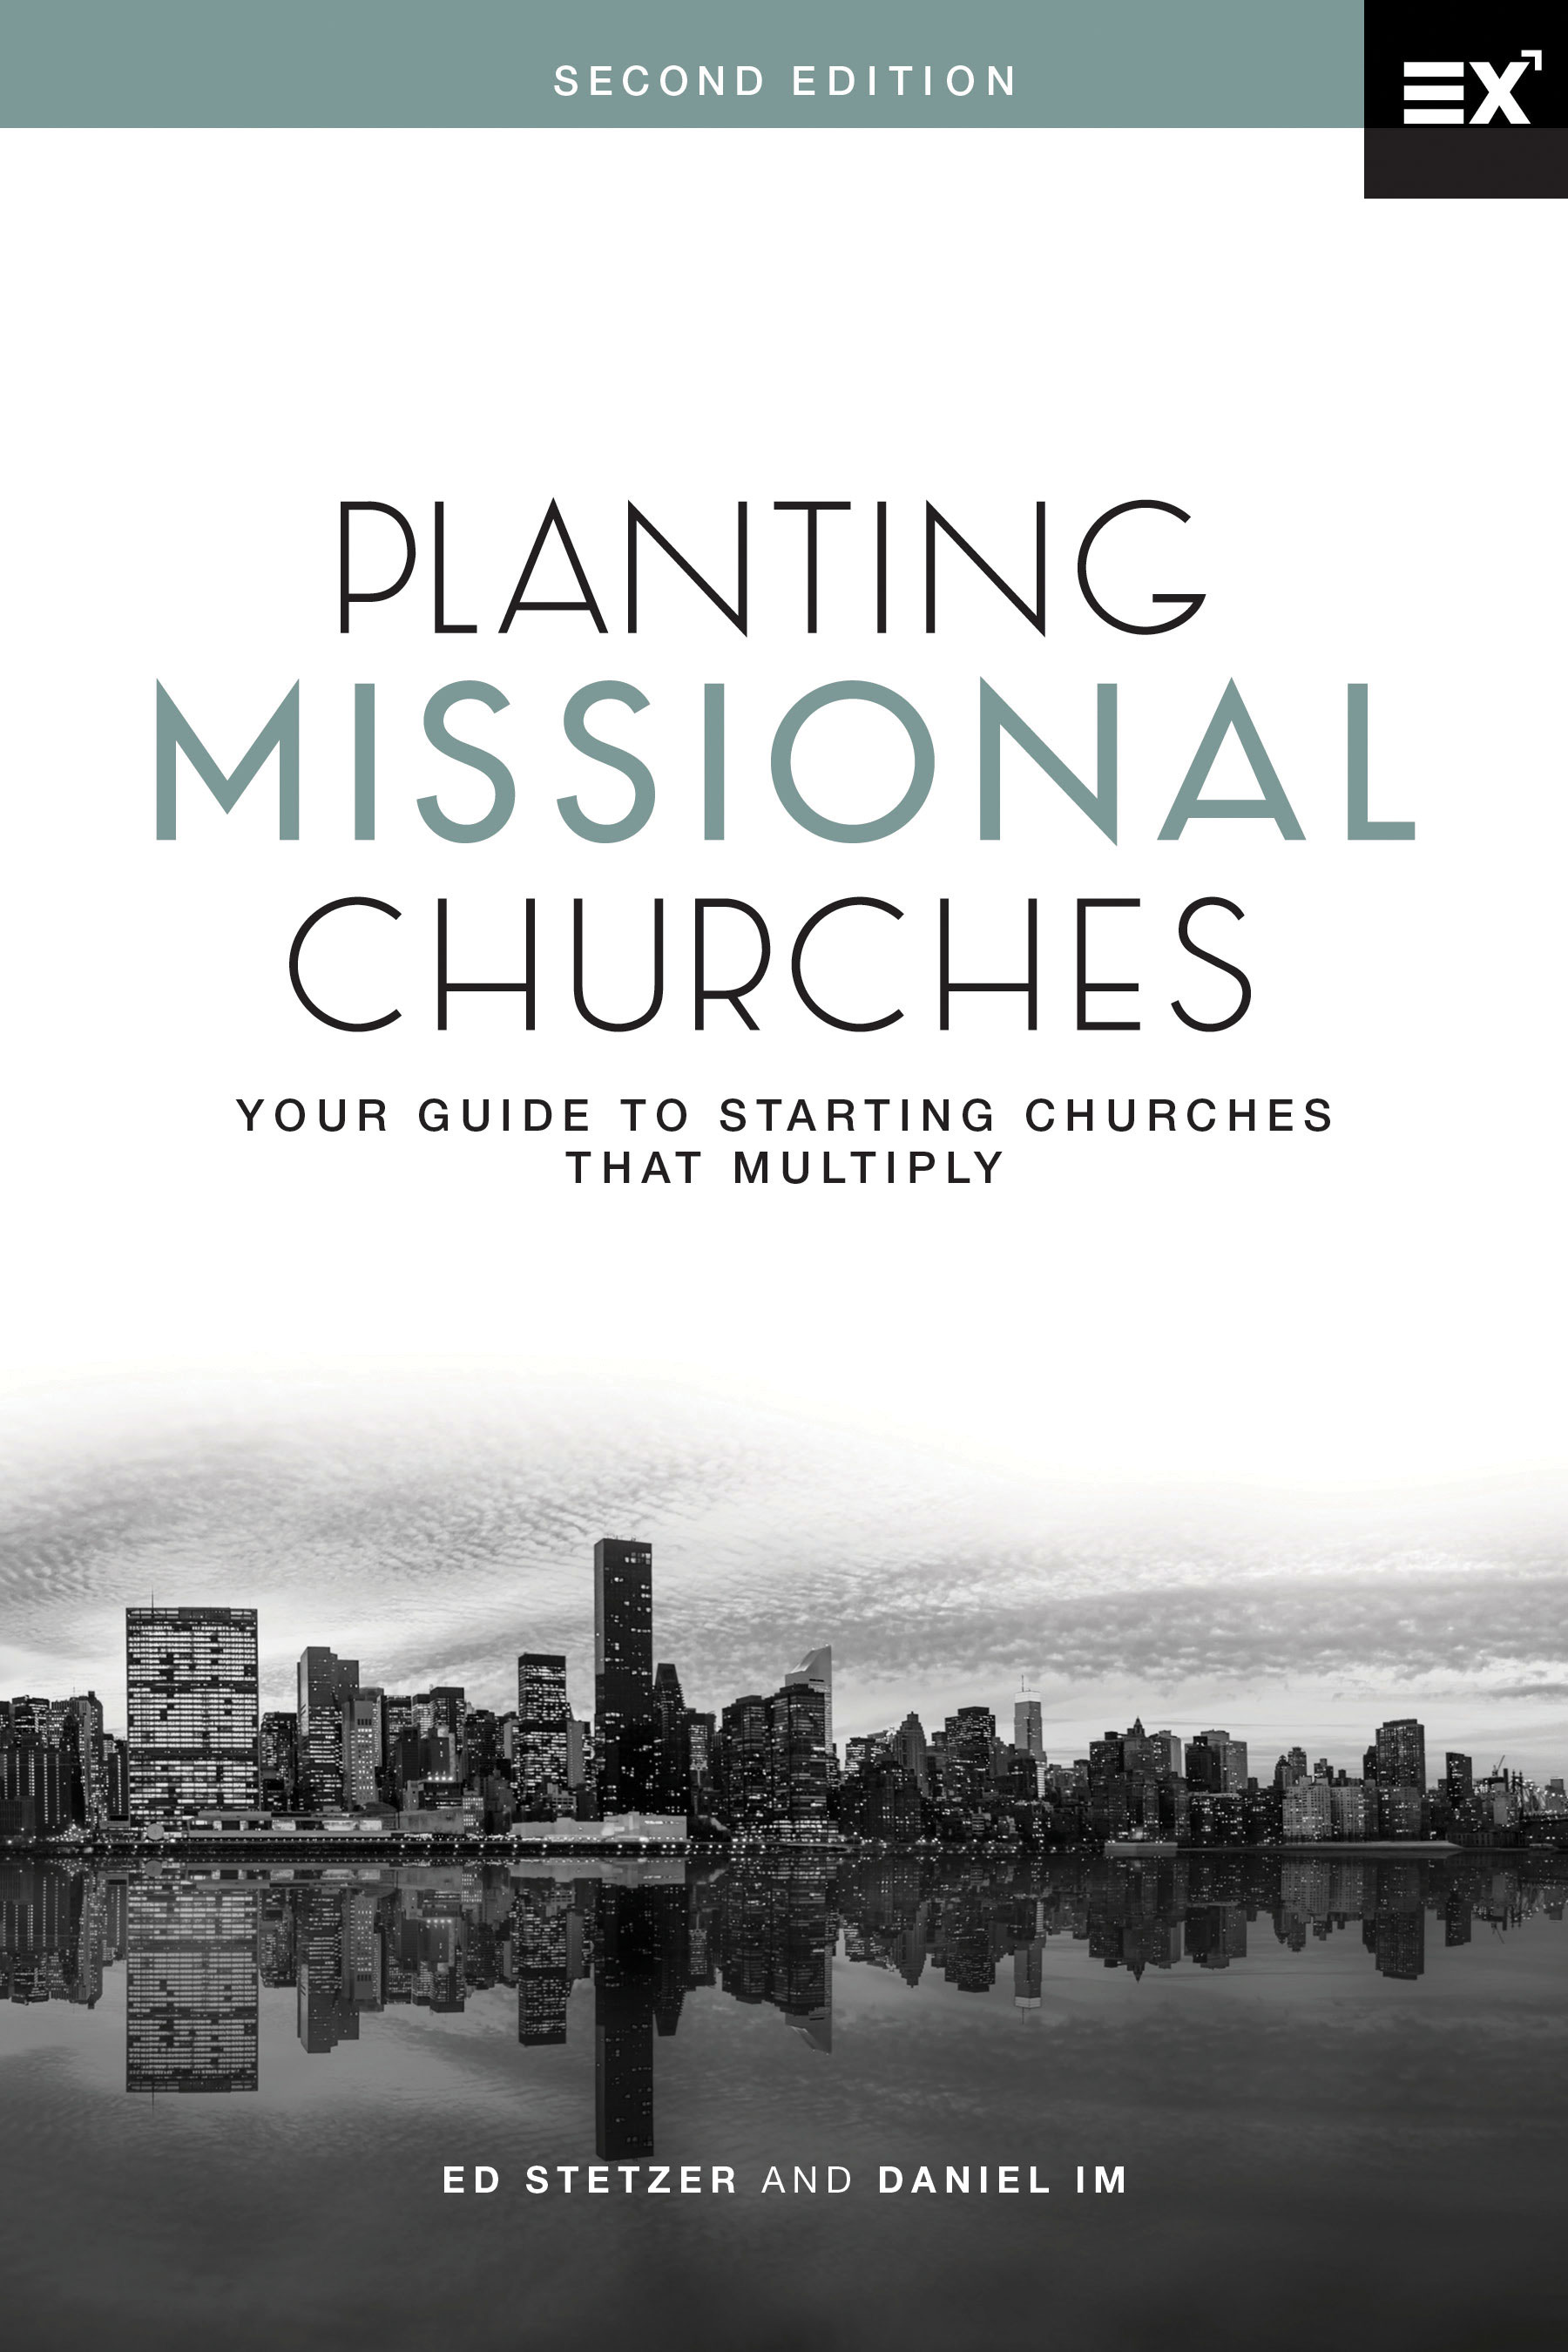 "<span class=""atmosphere-large-text"">01</span><span class=""intro"">Planting Missional Churches</span>"